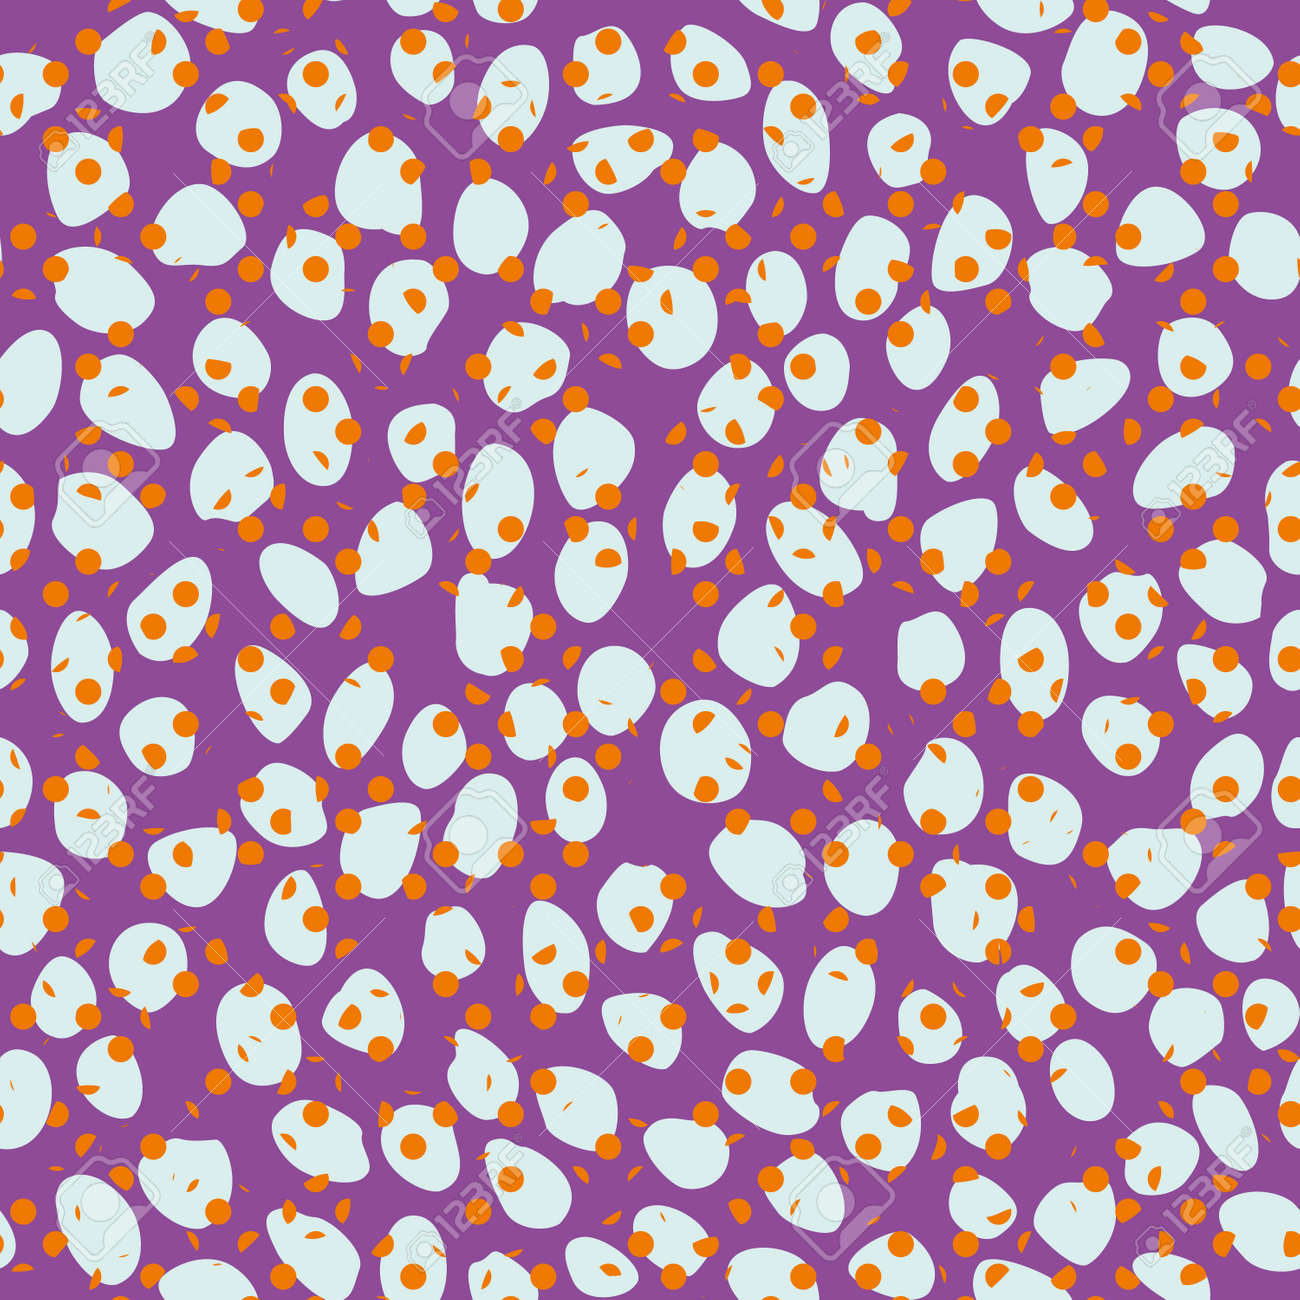 Pattern seamless of white dots and brown spots on violet background. Continuous design for the textile industry. - 161483597